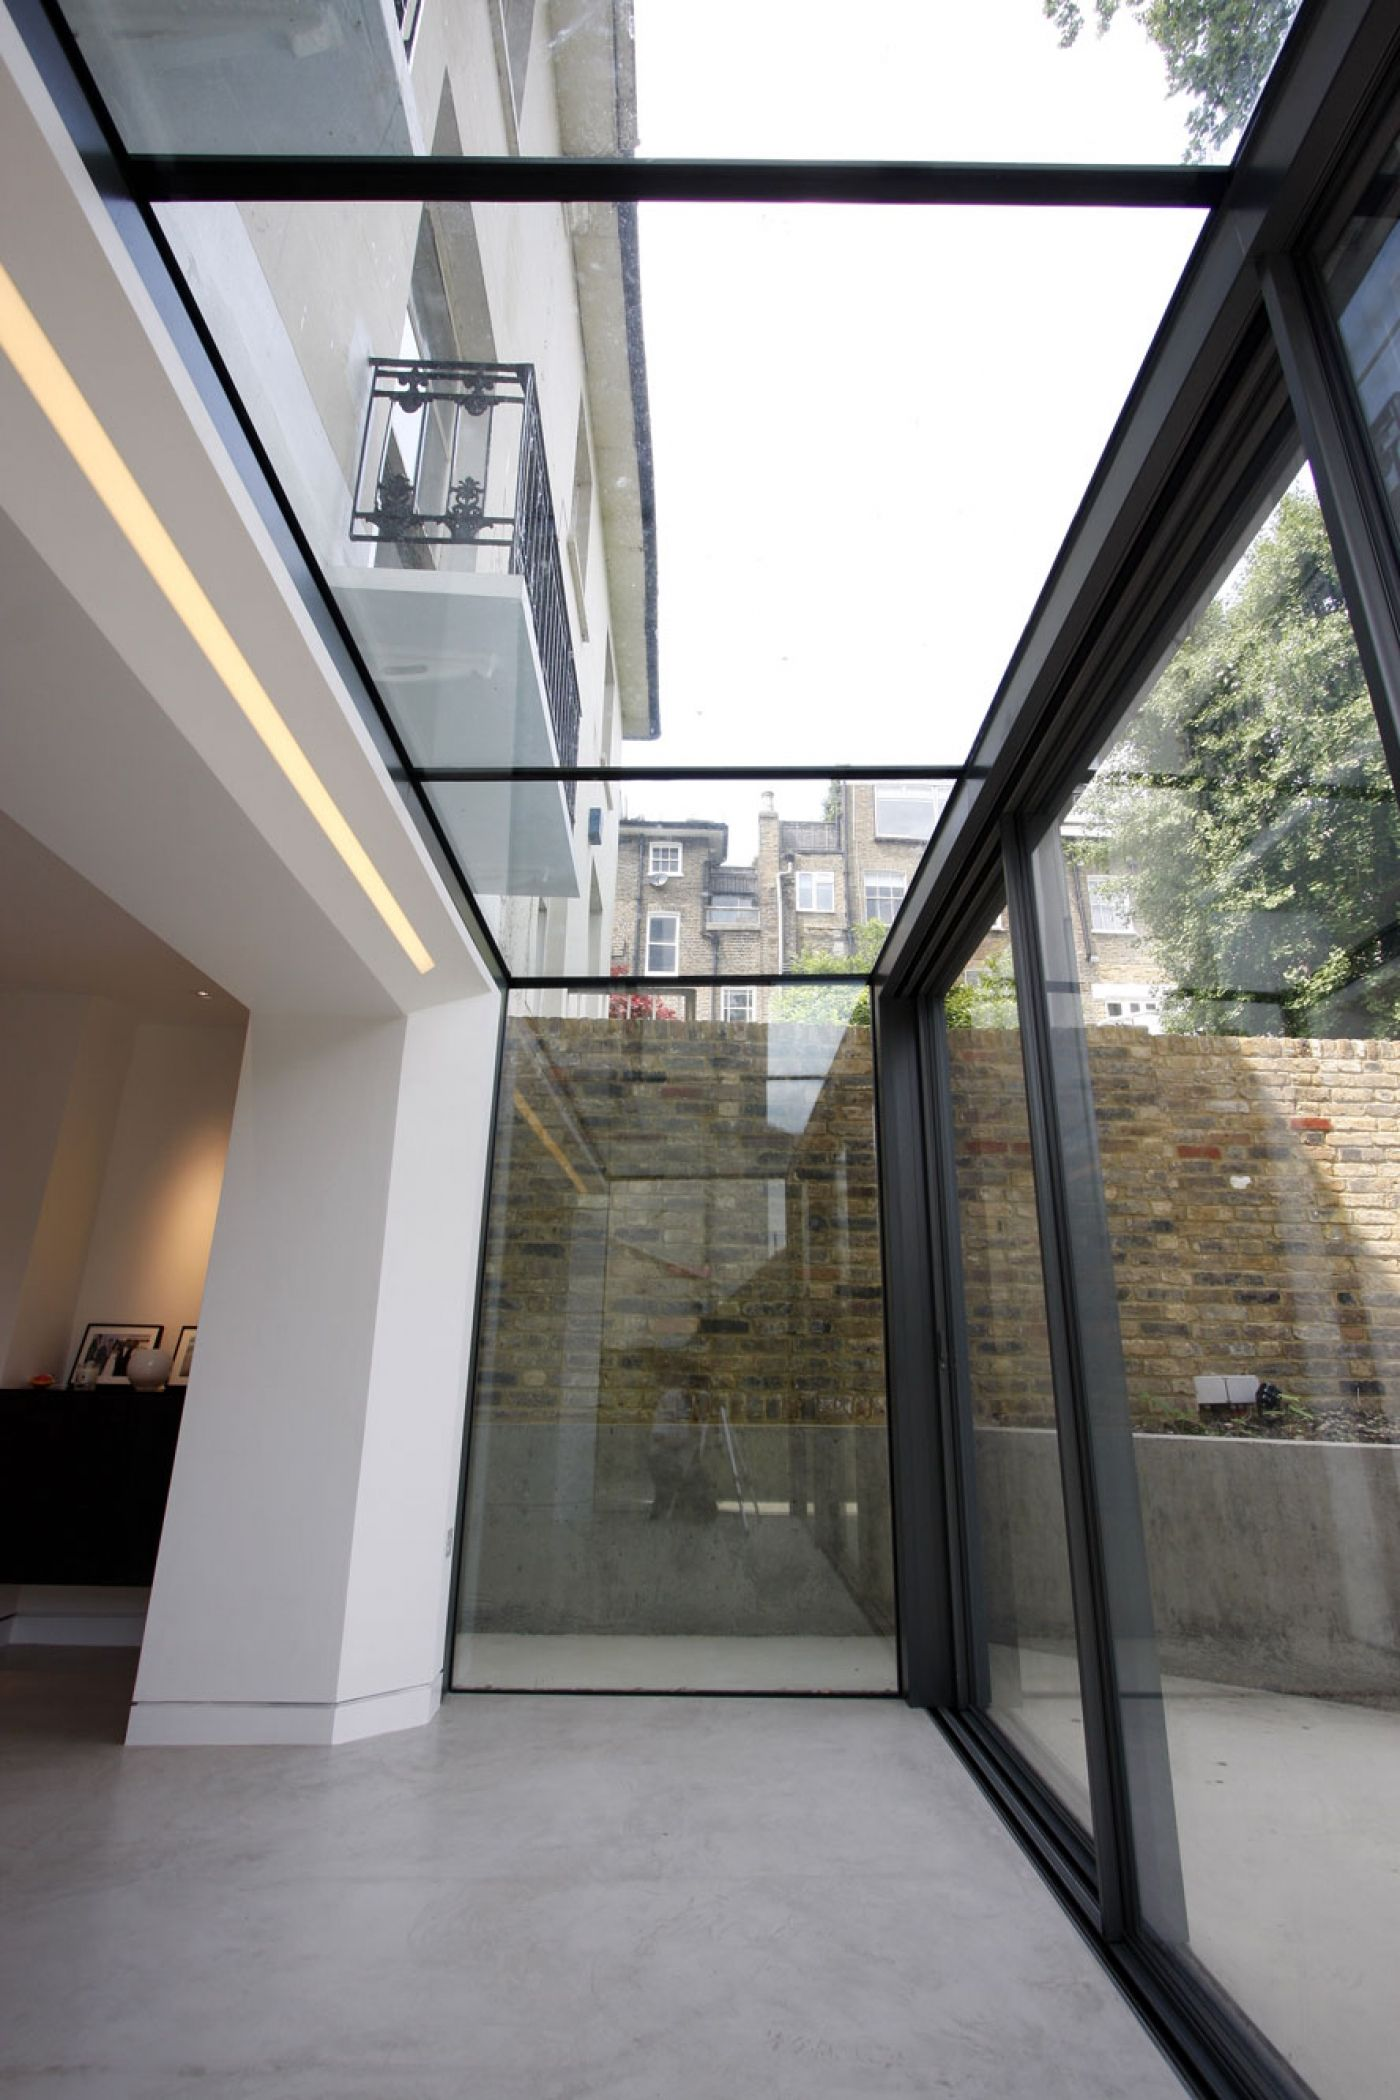 Glass Roof Extension The Versatile Glass Extension On This Traditional Home Uses A